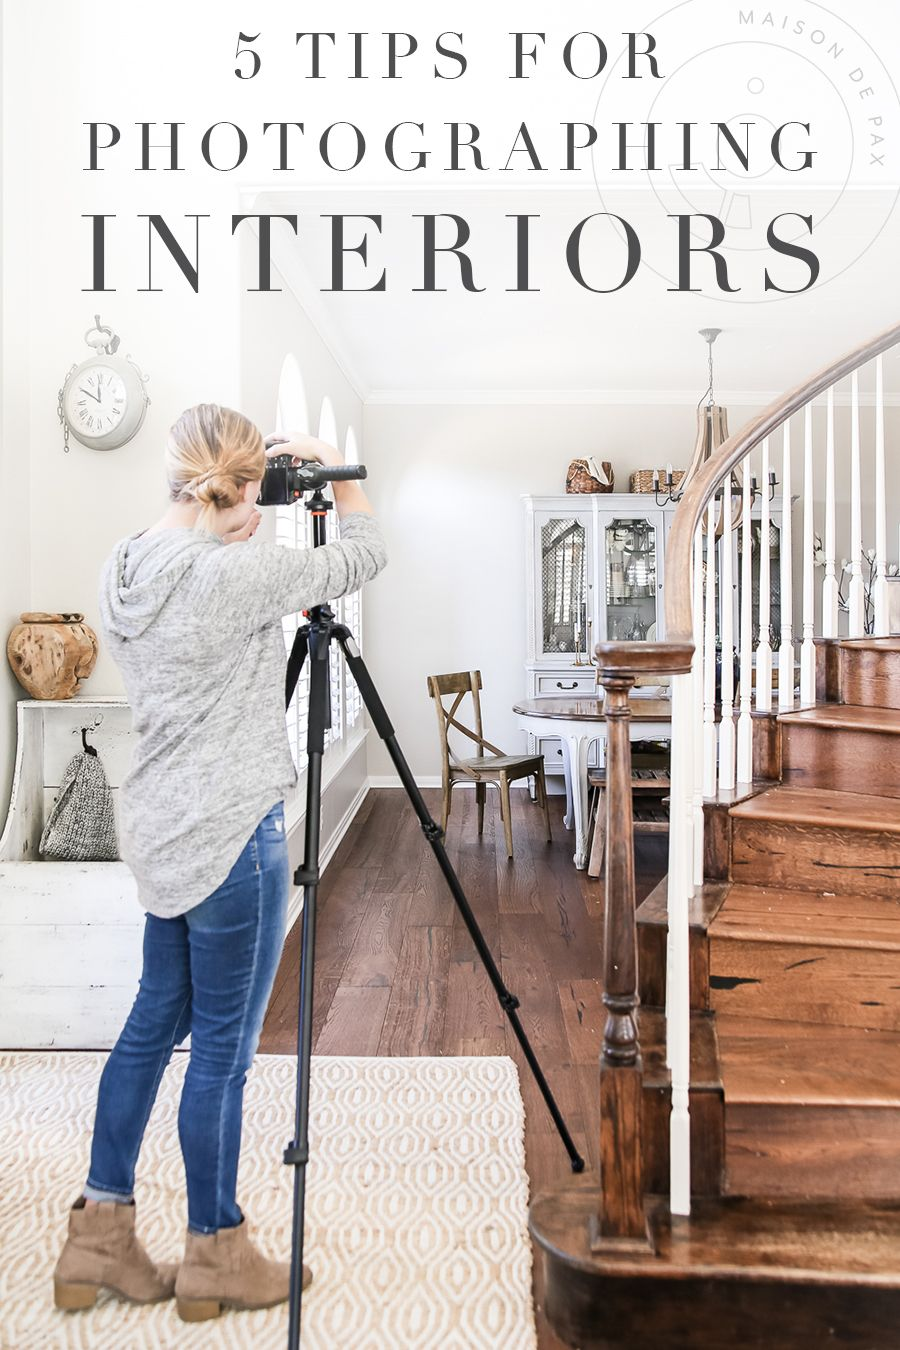 5 Tips For Photographing Interiors Interior Design Photography Photography Tips Photography Lessons